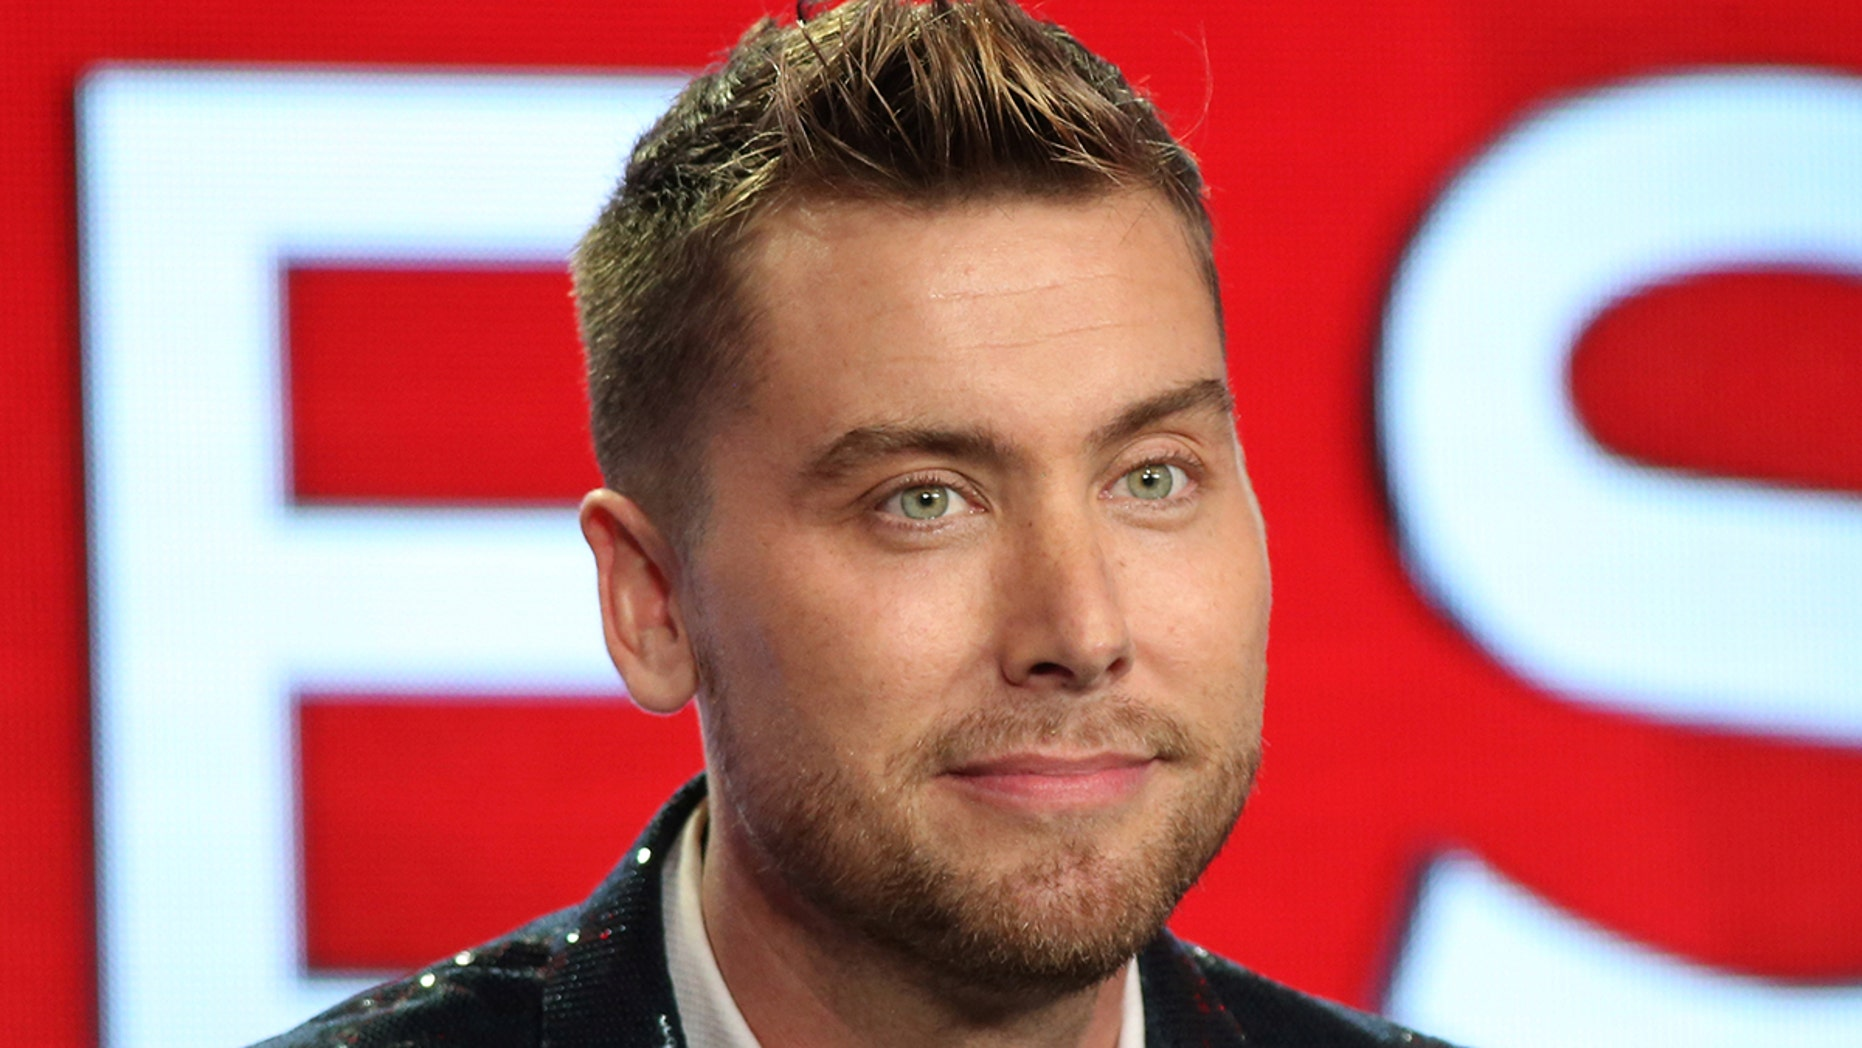 """Lance Bass speaks about the Fox television show """"My Kitchen Rules"""" during the TCA presentations in Pasadena, California, U.S., January 11, 2017. REUTERS/Lucy Nicholson - RC1E92FBF150"""